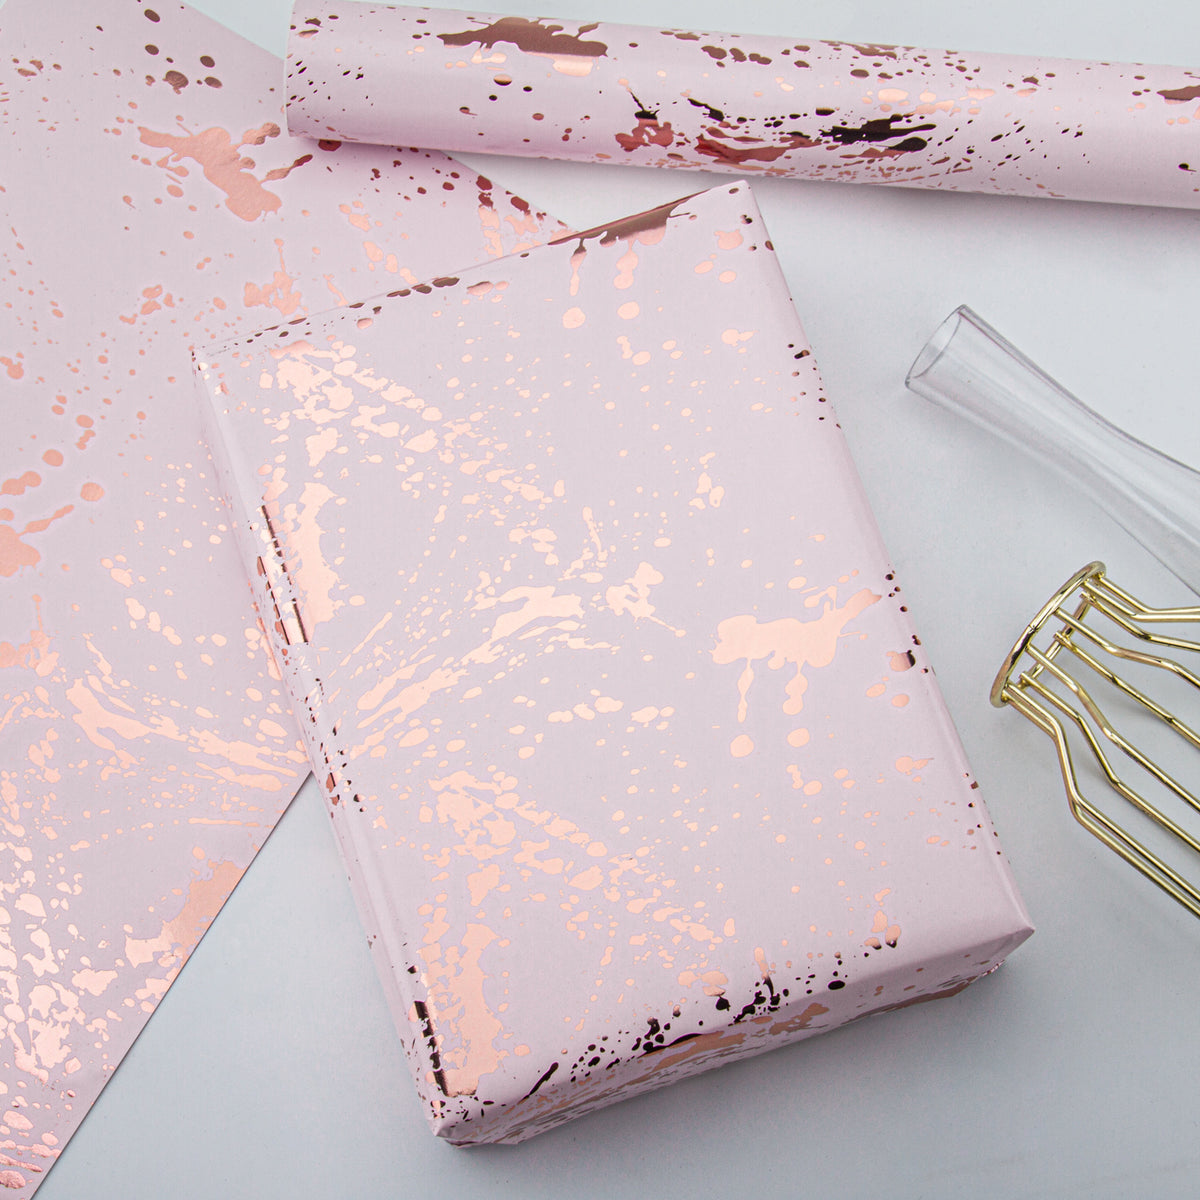 Wrapaholic- Pink-Color-with Gold-Foil-Splash-Ink- Design-Gift Wrapping-Paper -Roll-5